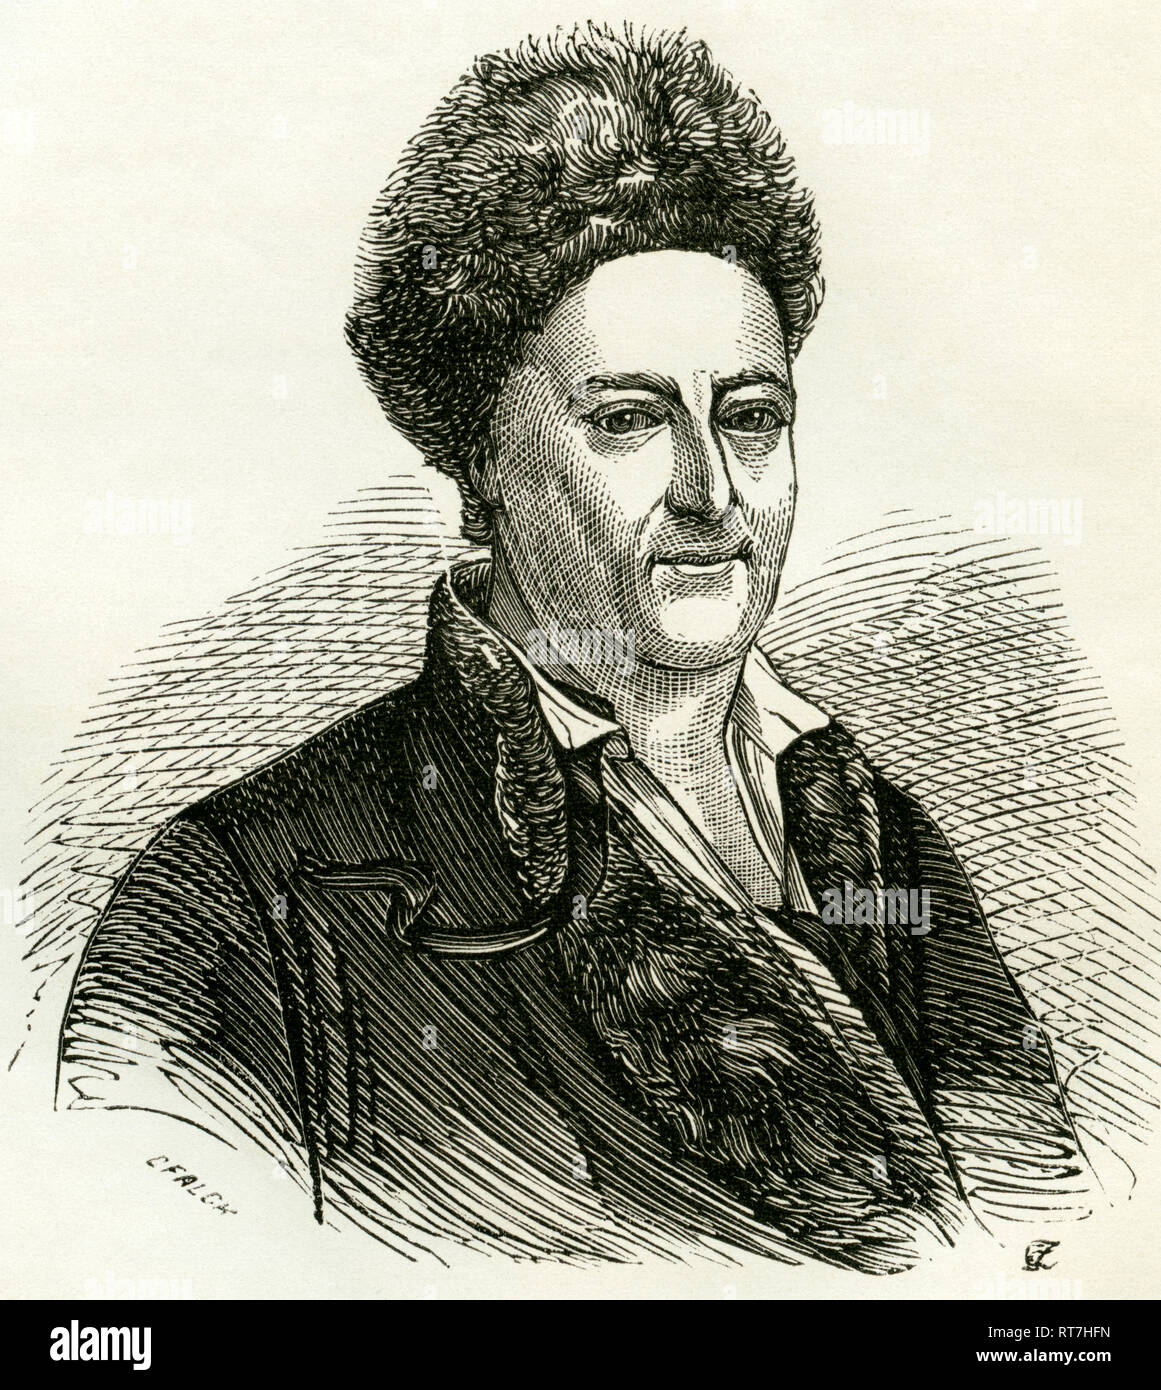 Hagedorn, Friedrich von (Friederich), German poet of the Rococo period, born and died in Hamburg, illustration from: 'Geschichte der Stadt Hamburg ' (history of Hamburg), published by Ackermann and Wulff, Hamburg, 1866., Additional-Rights-Clearance-Info-Not-Available - Stock Image